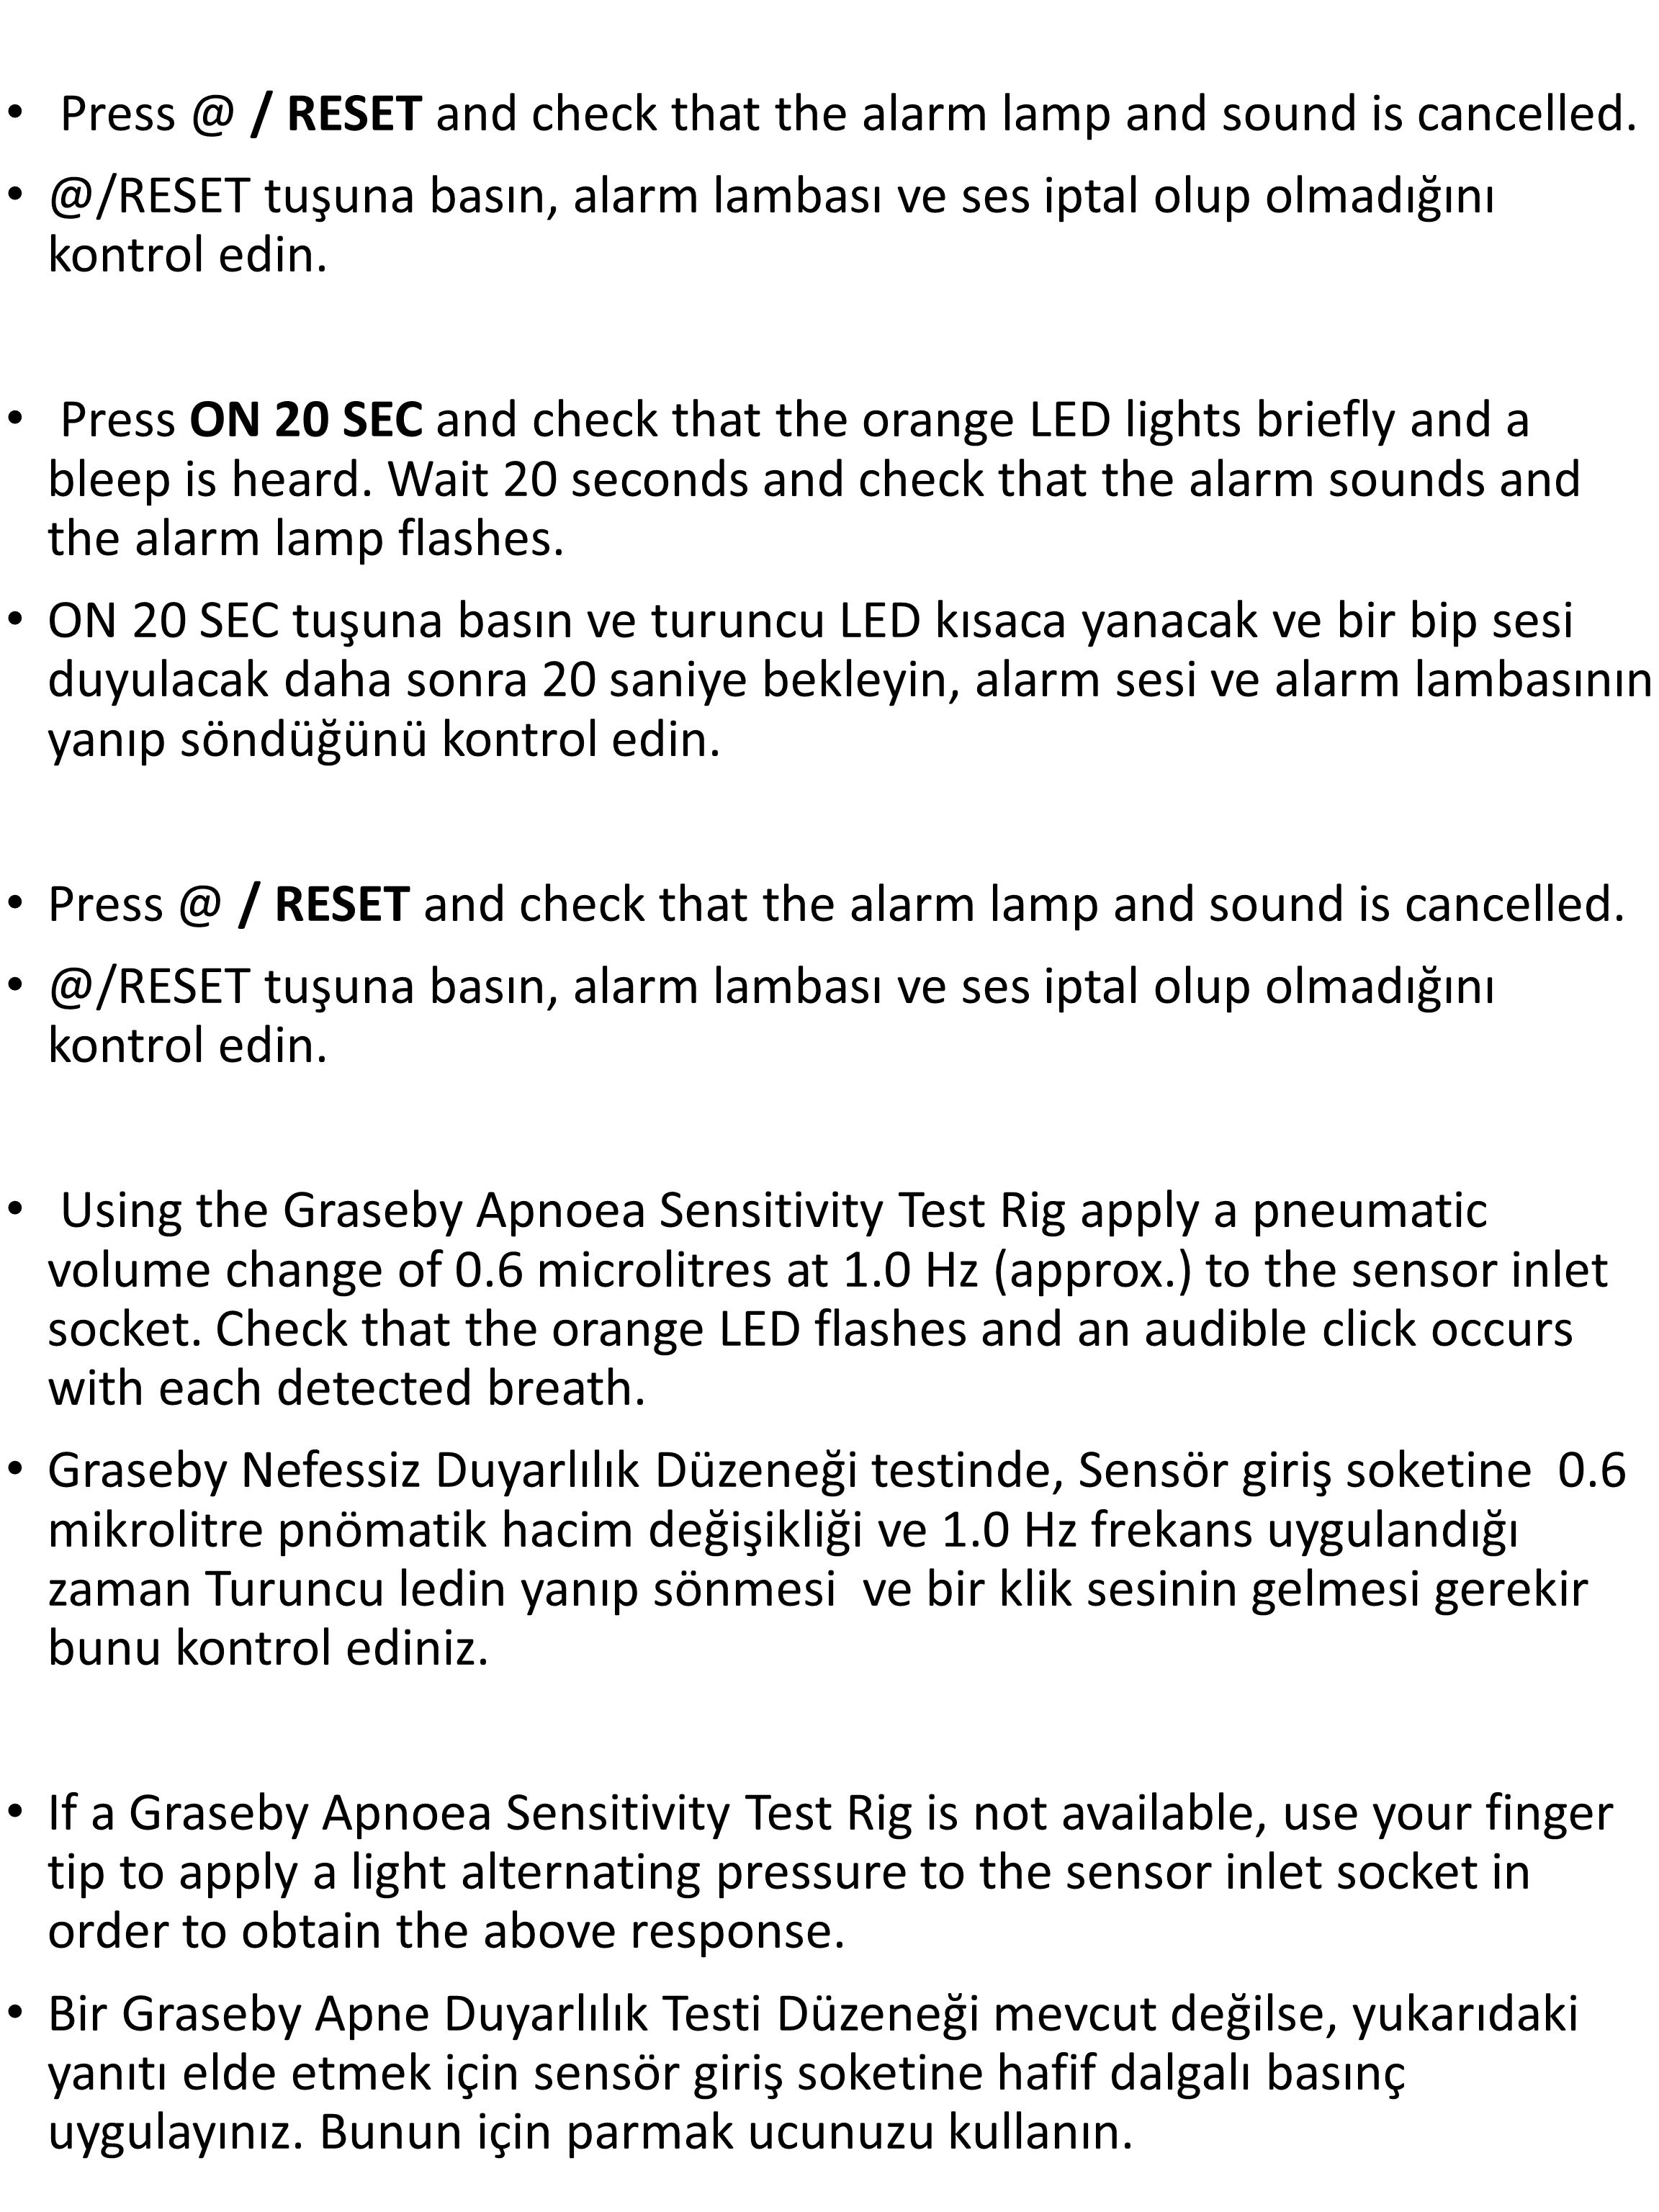 Press @ / RESET and check that the alarm lamp and sound is cancelled.